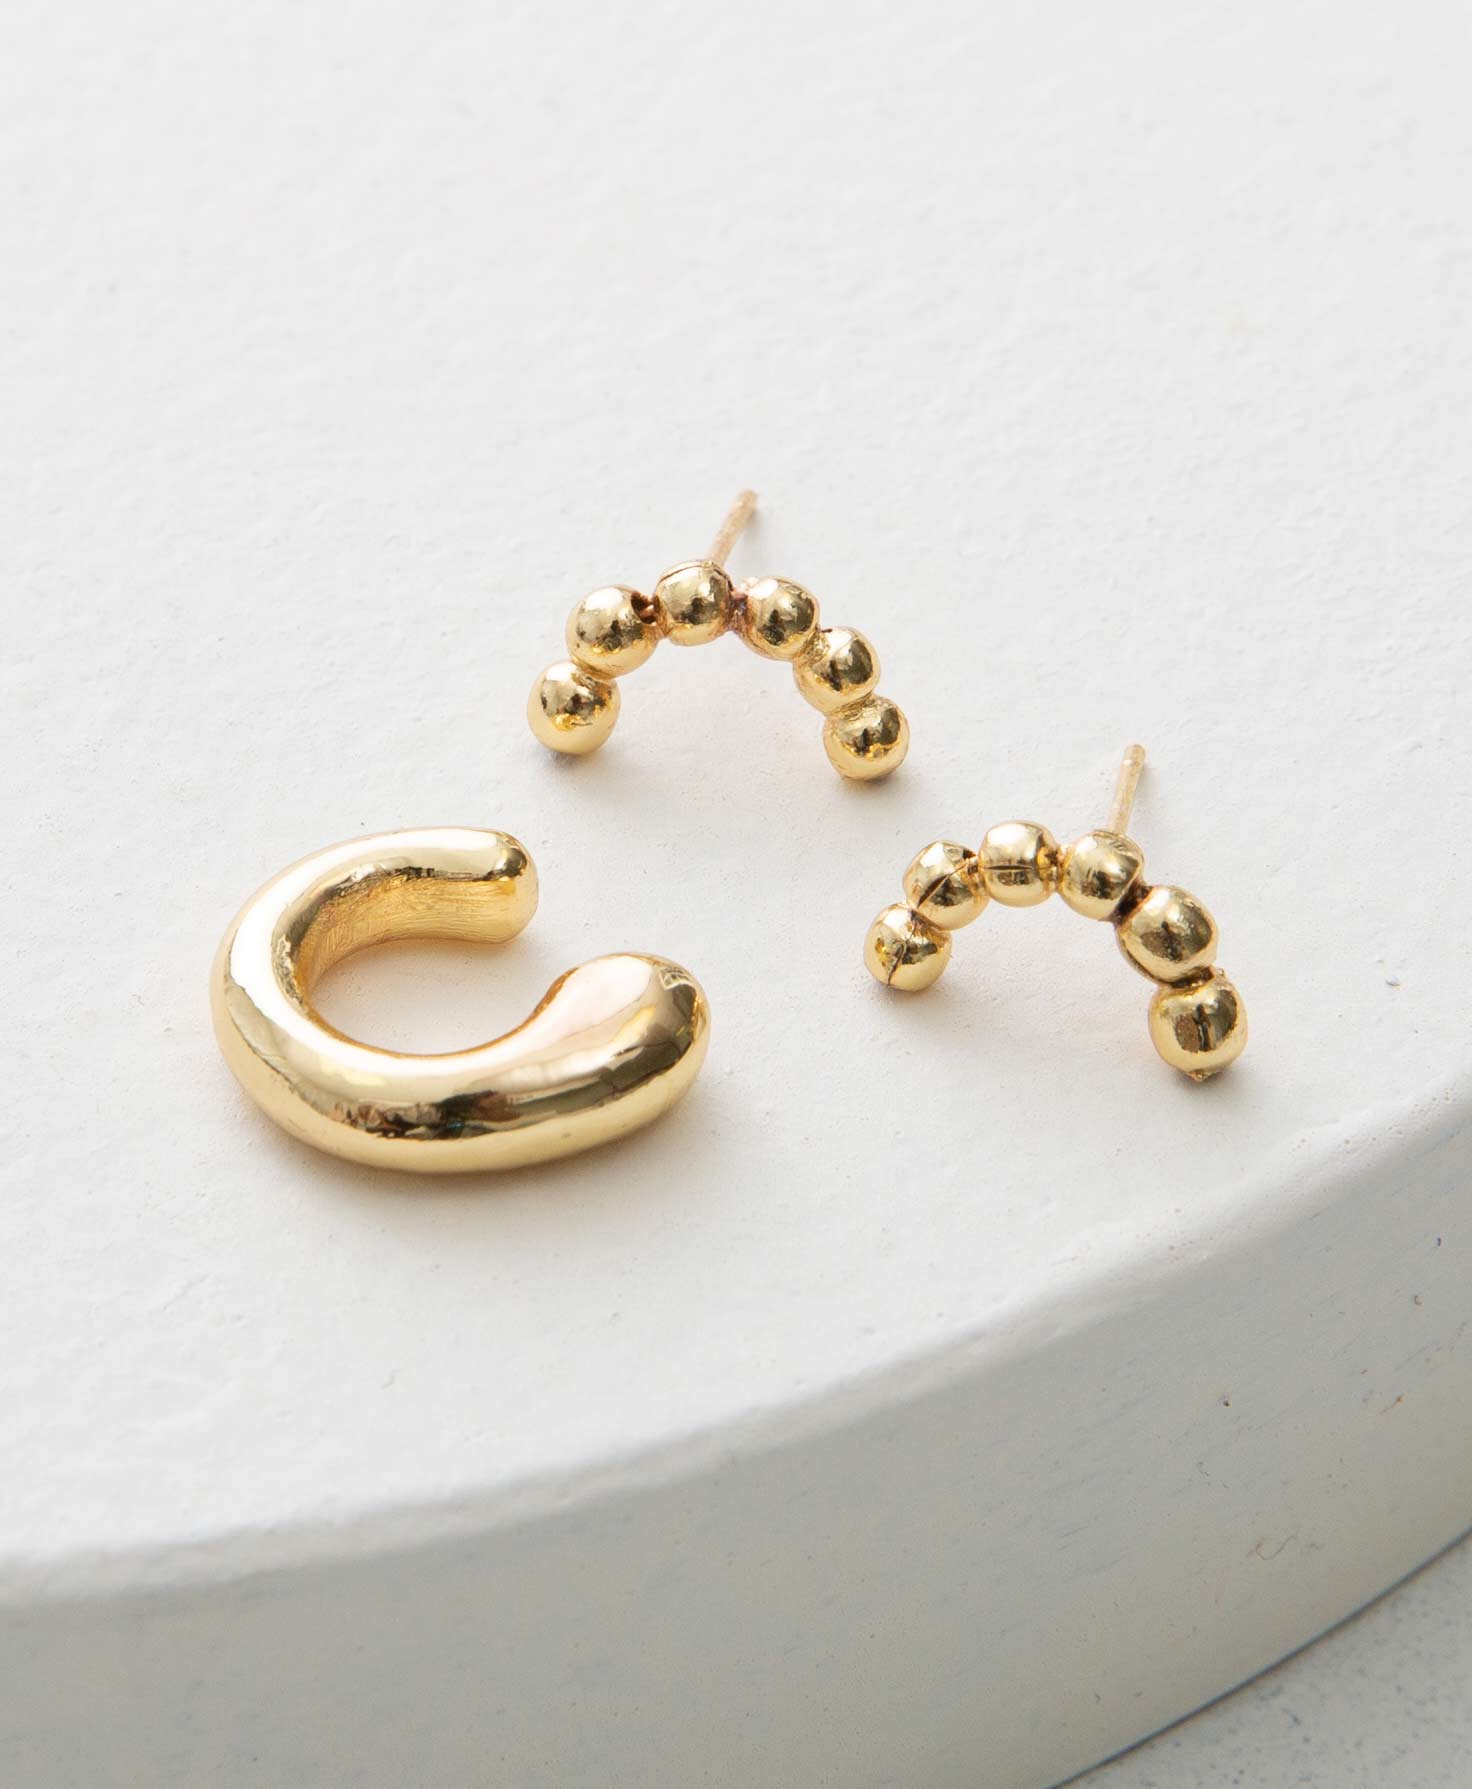 The earrings and ear cuff included in the Nebulous set sit on a white platform. The earrings are studs. They are composed of a row of brass balls that form an arch shape. The ear cuff is made of thick, shining brass. It has rounded edges and wraps around to form a C shape that is worn over the top of the ear.